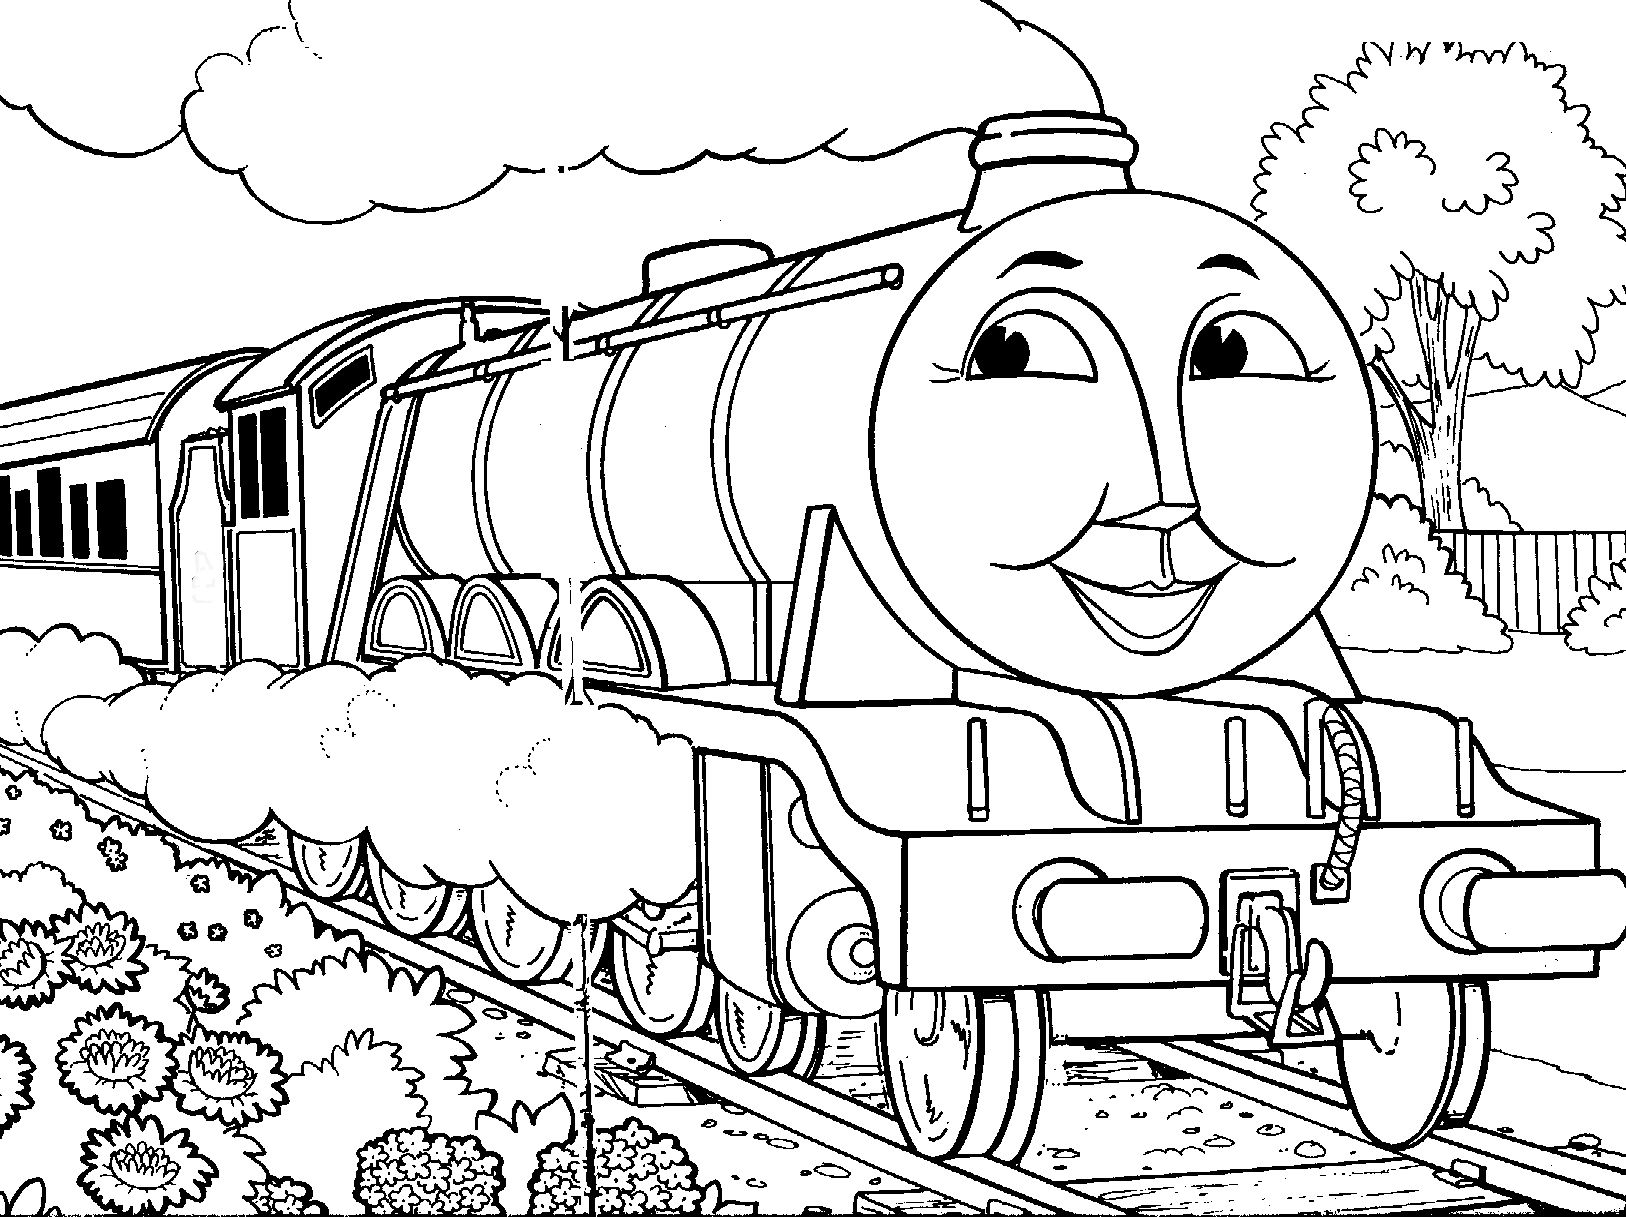 printable train coloring pages train caboose coloring pages at getcoloringscom free train pages coloring printable